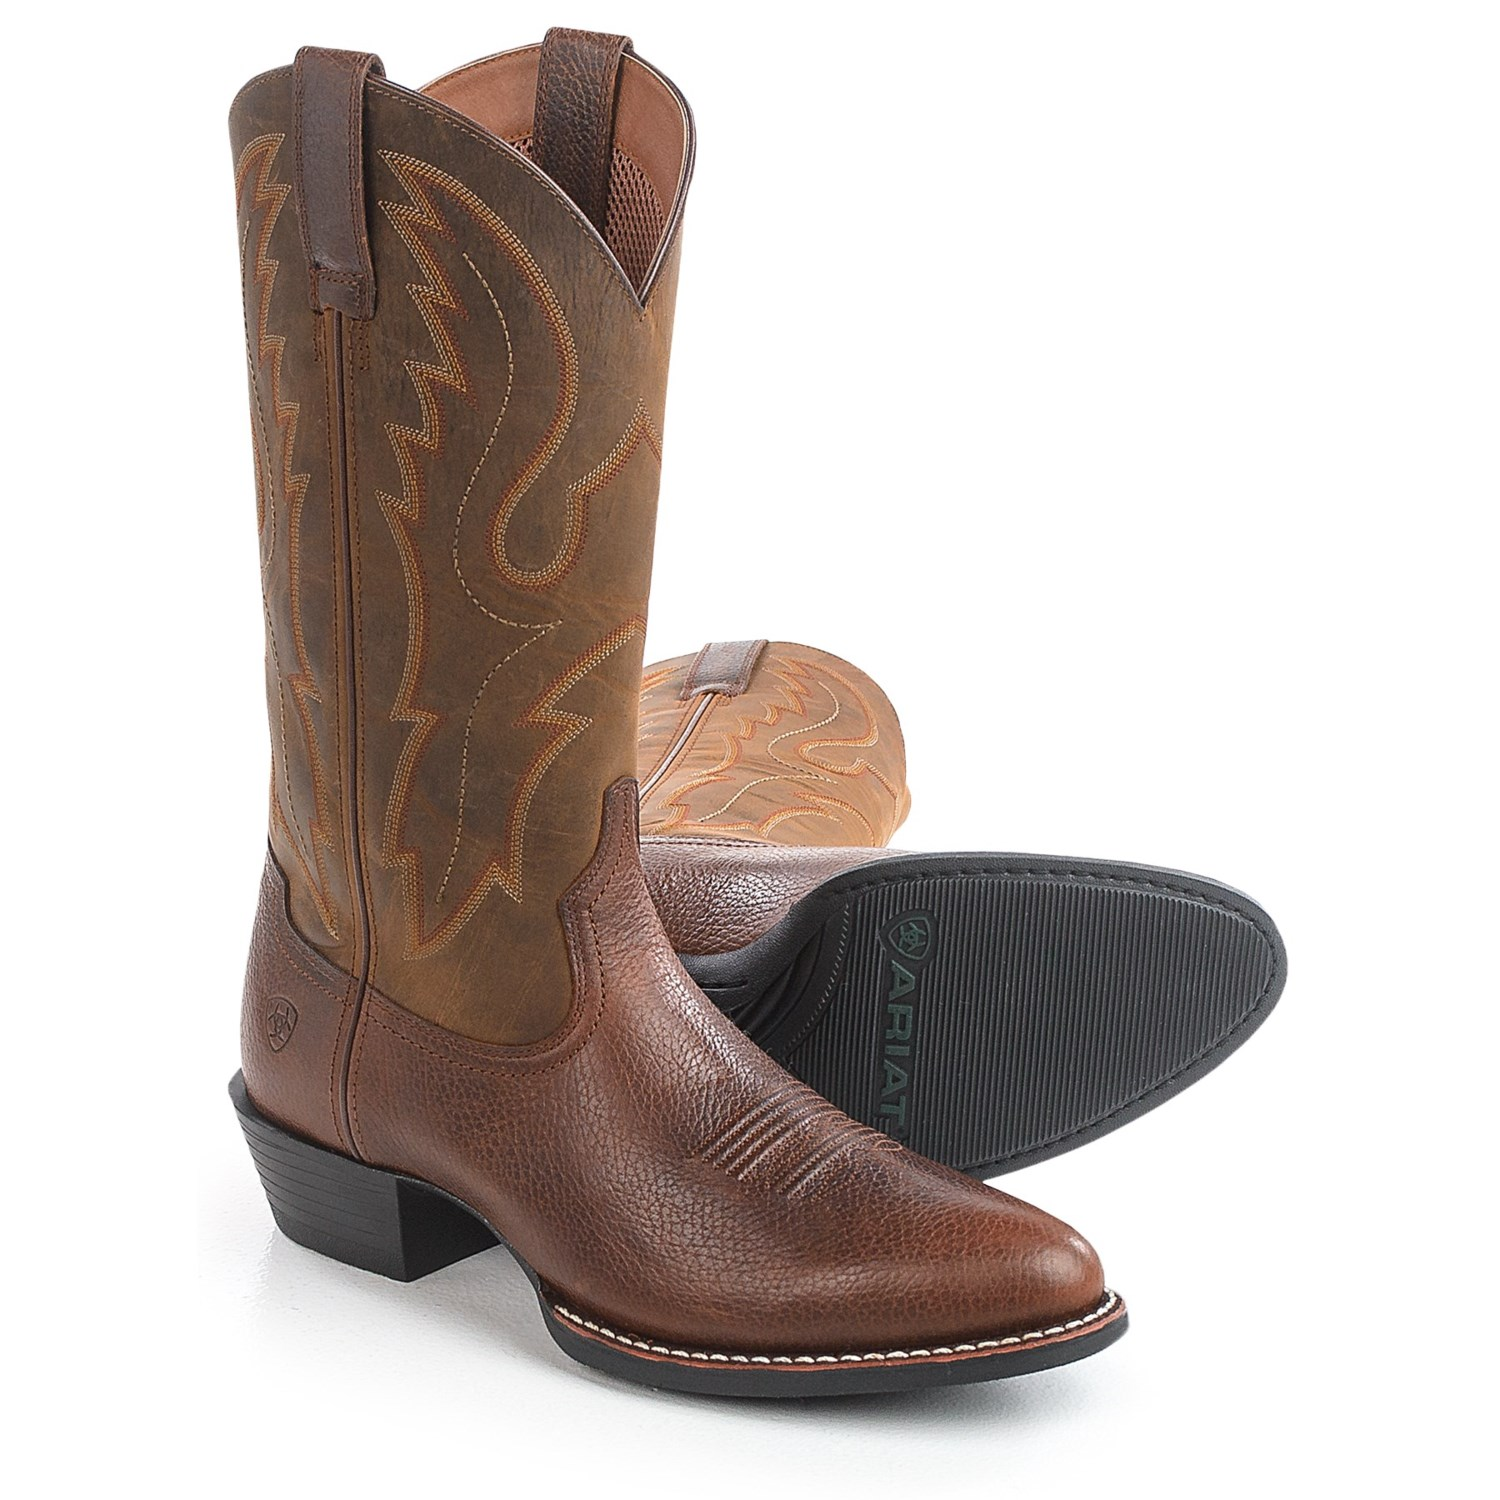 Ariat: Average savings of 51% at Sierra Trading Post